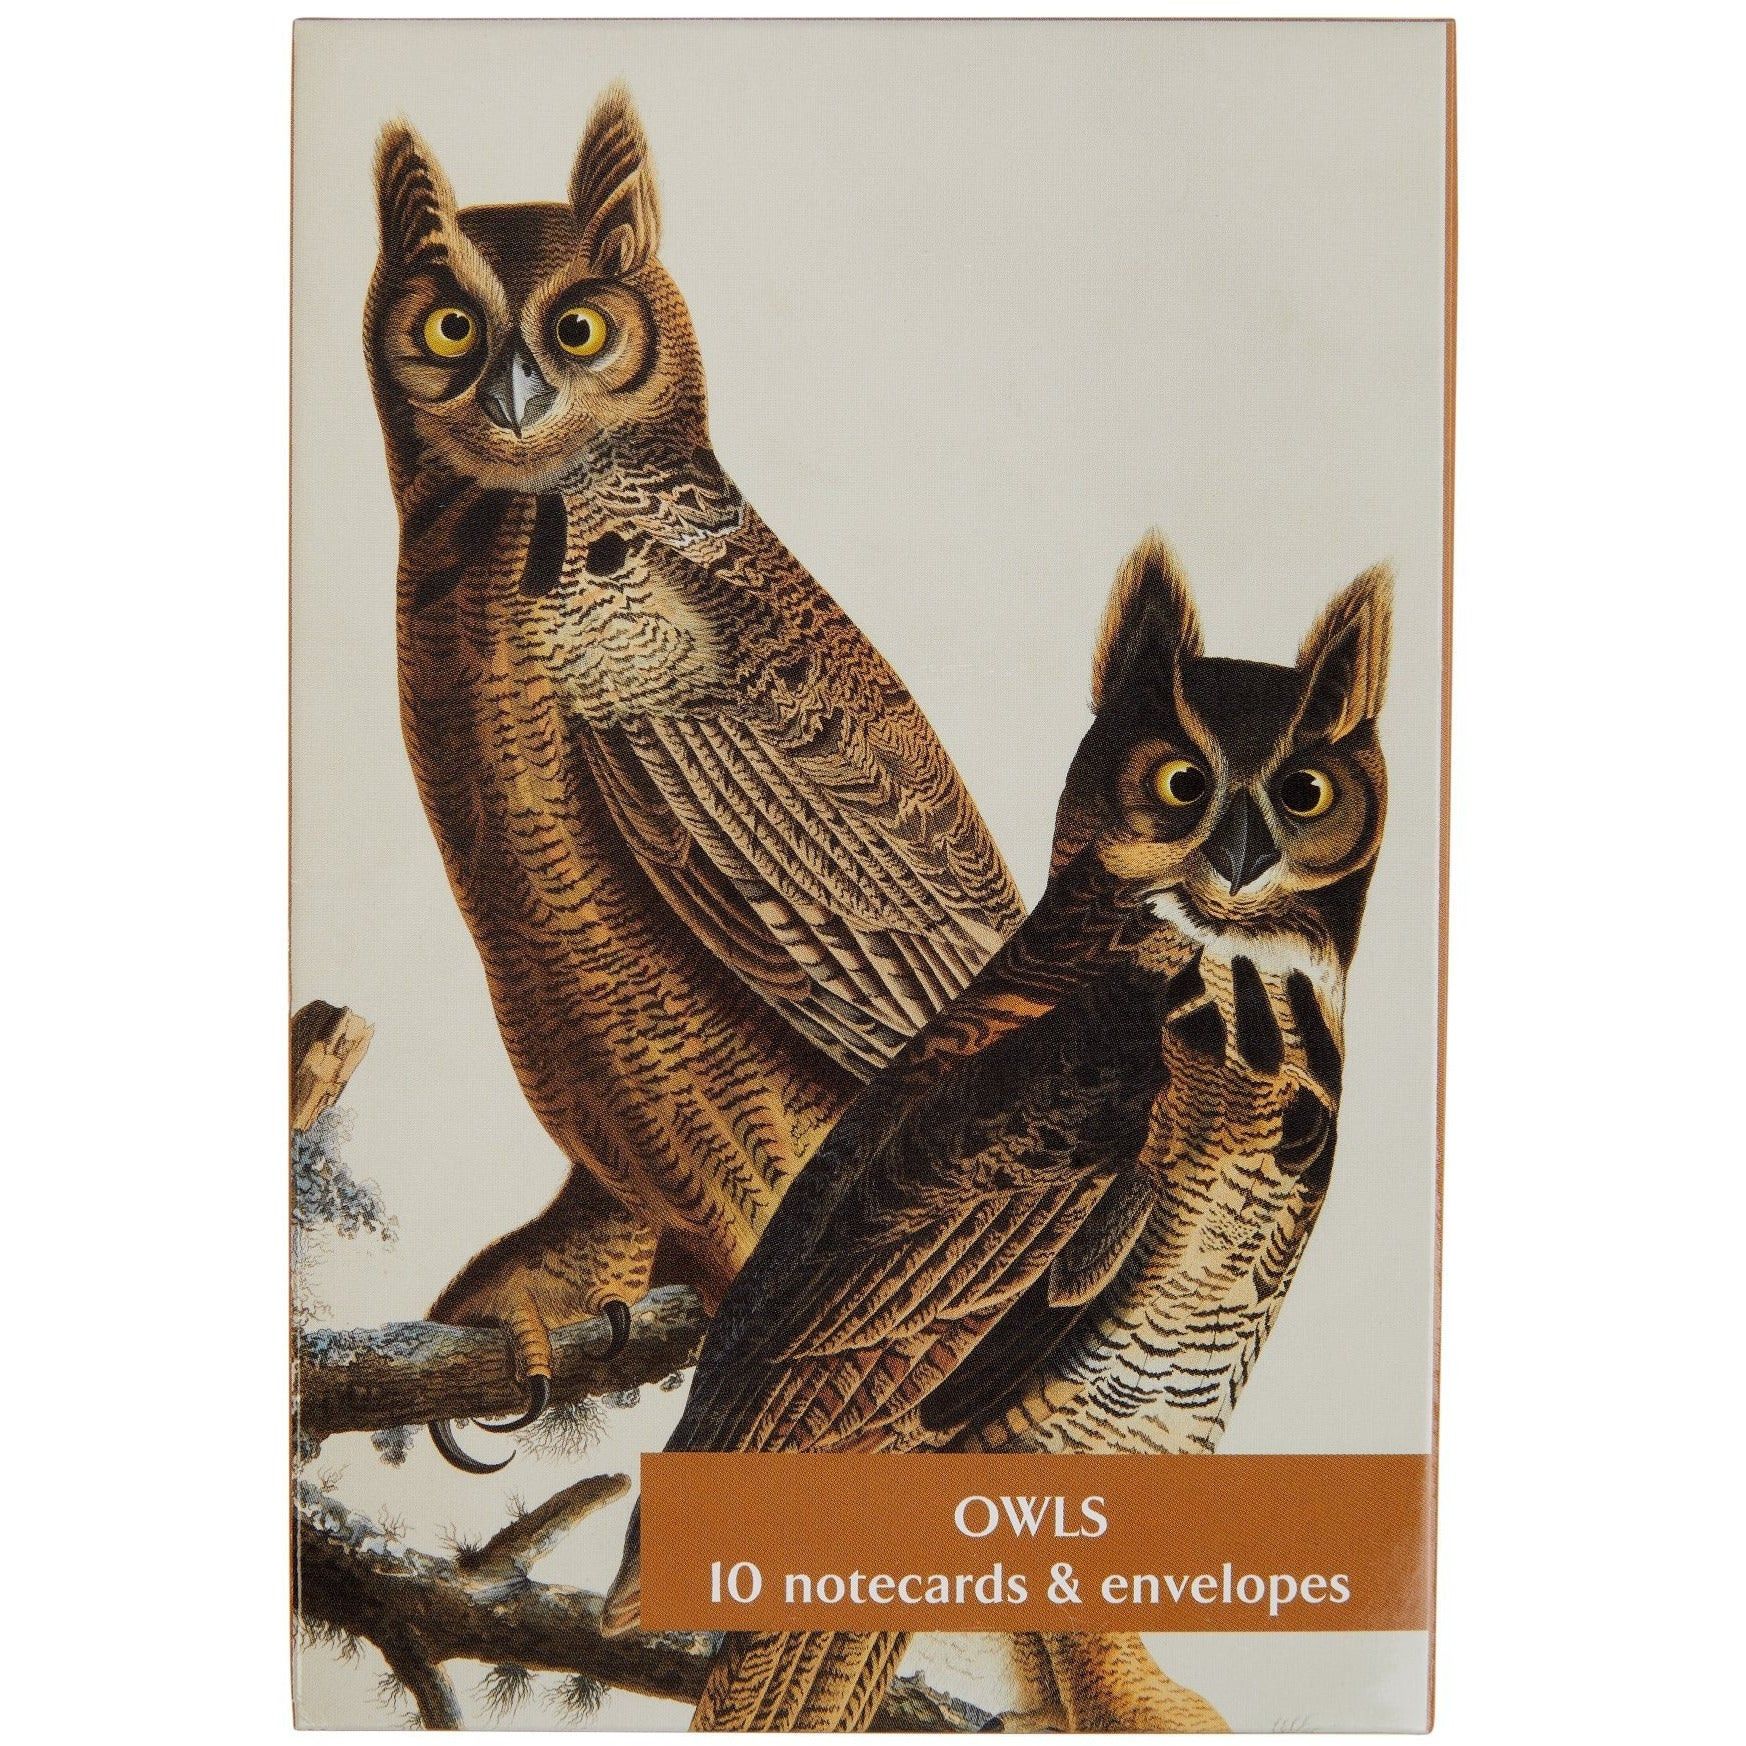 Featured image for the project: Owls - Notecard pack